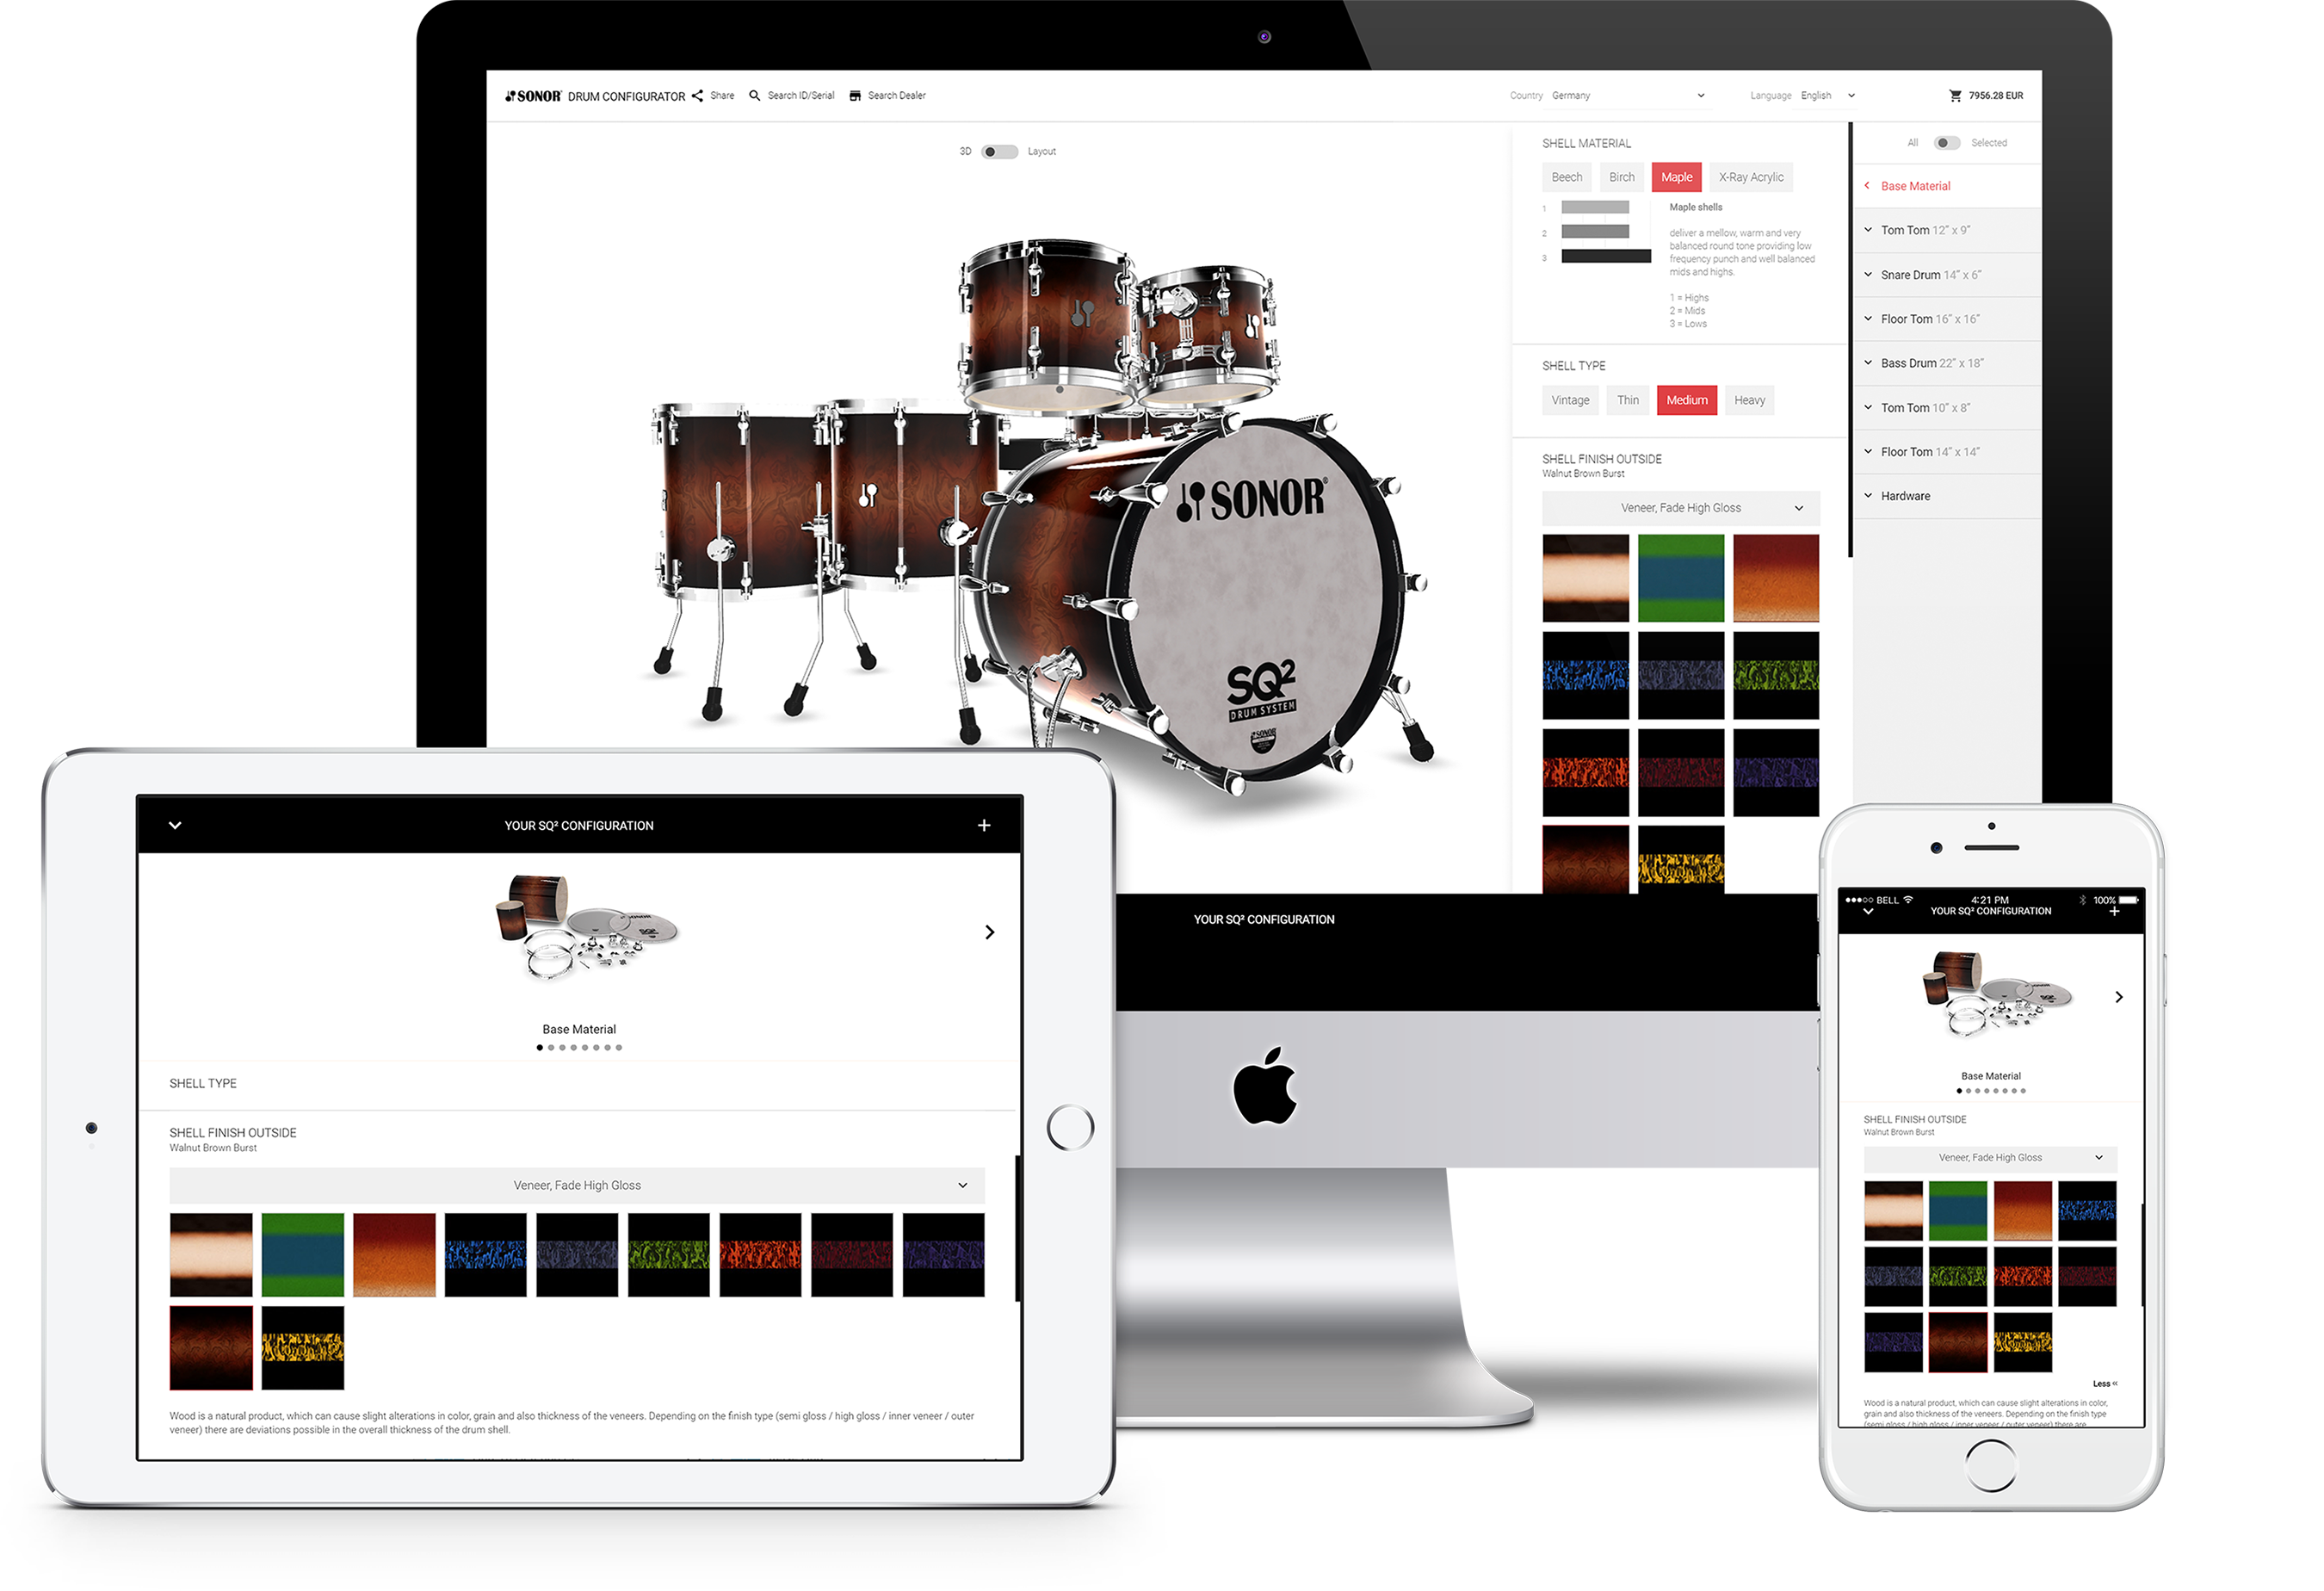 konfigurator webgl responsive desktop tablet iphone sonor drums